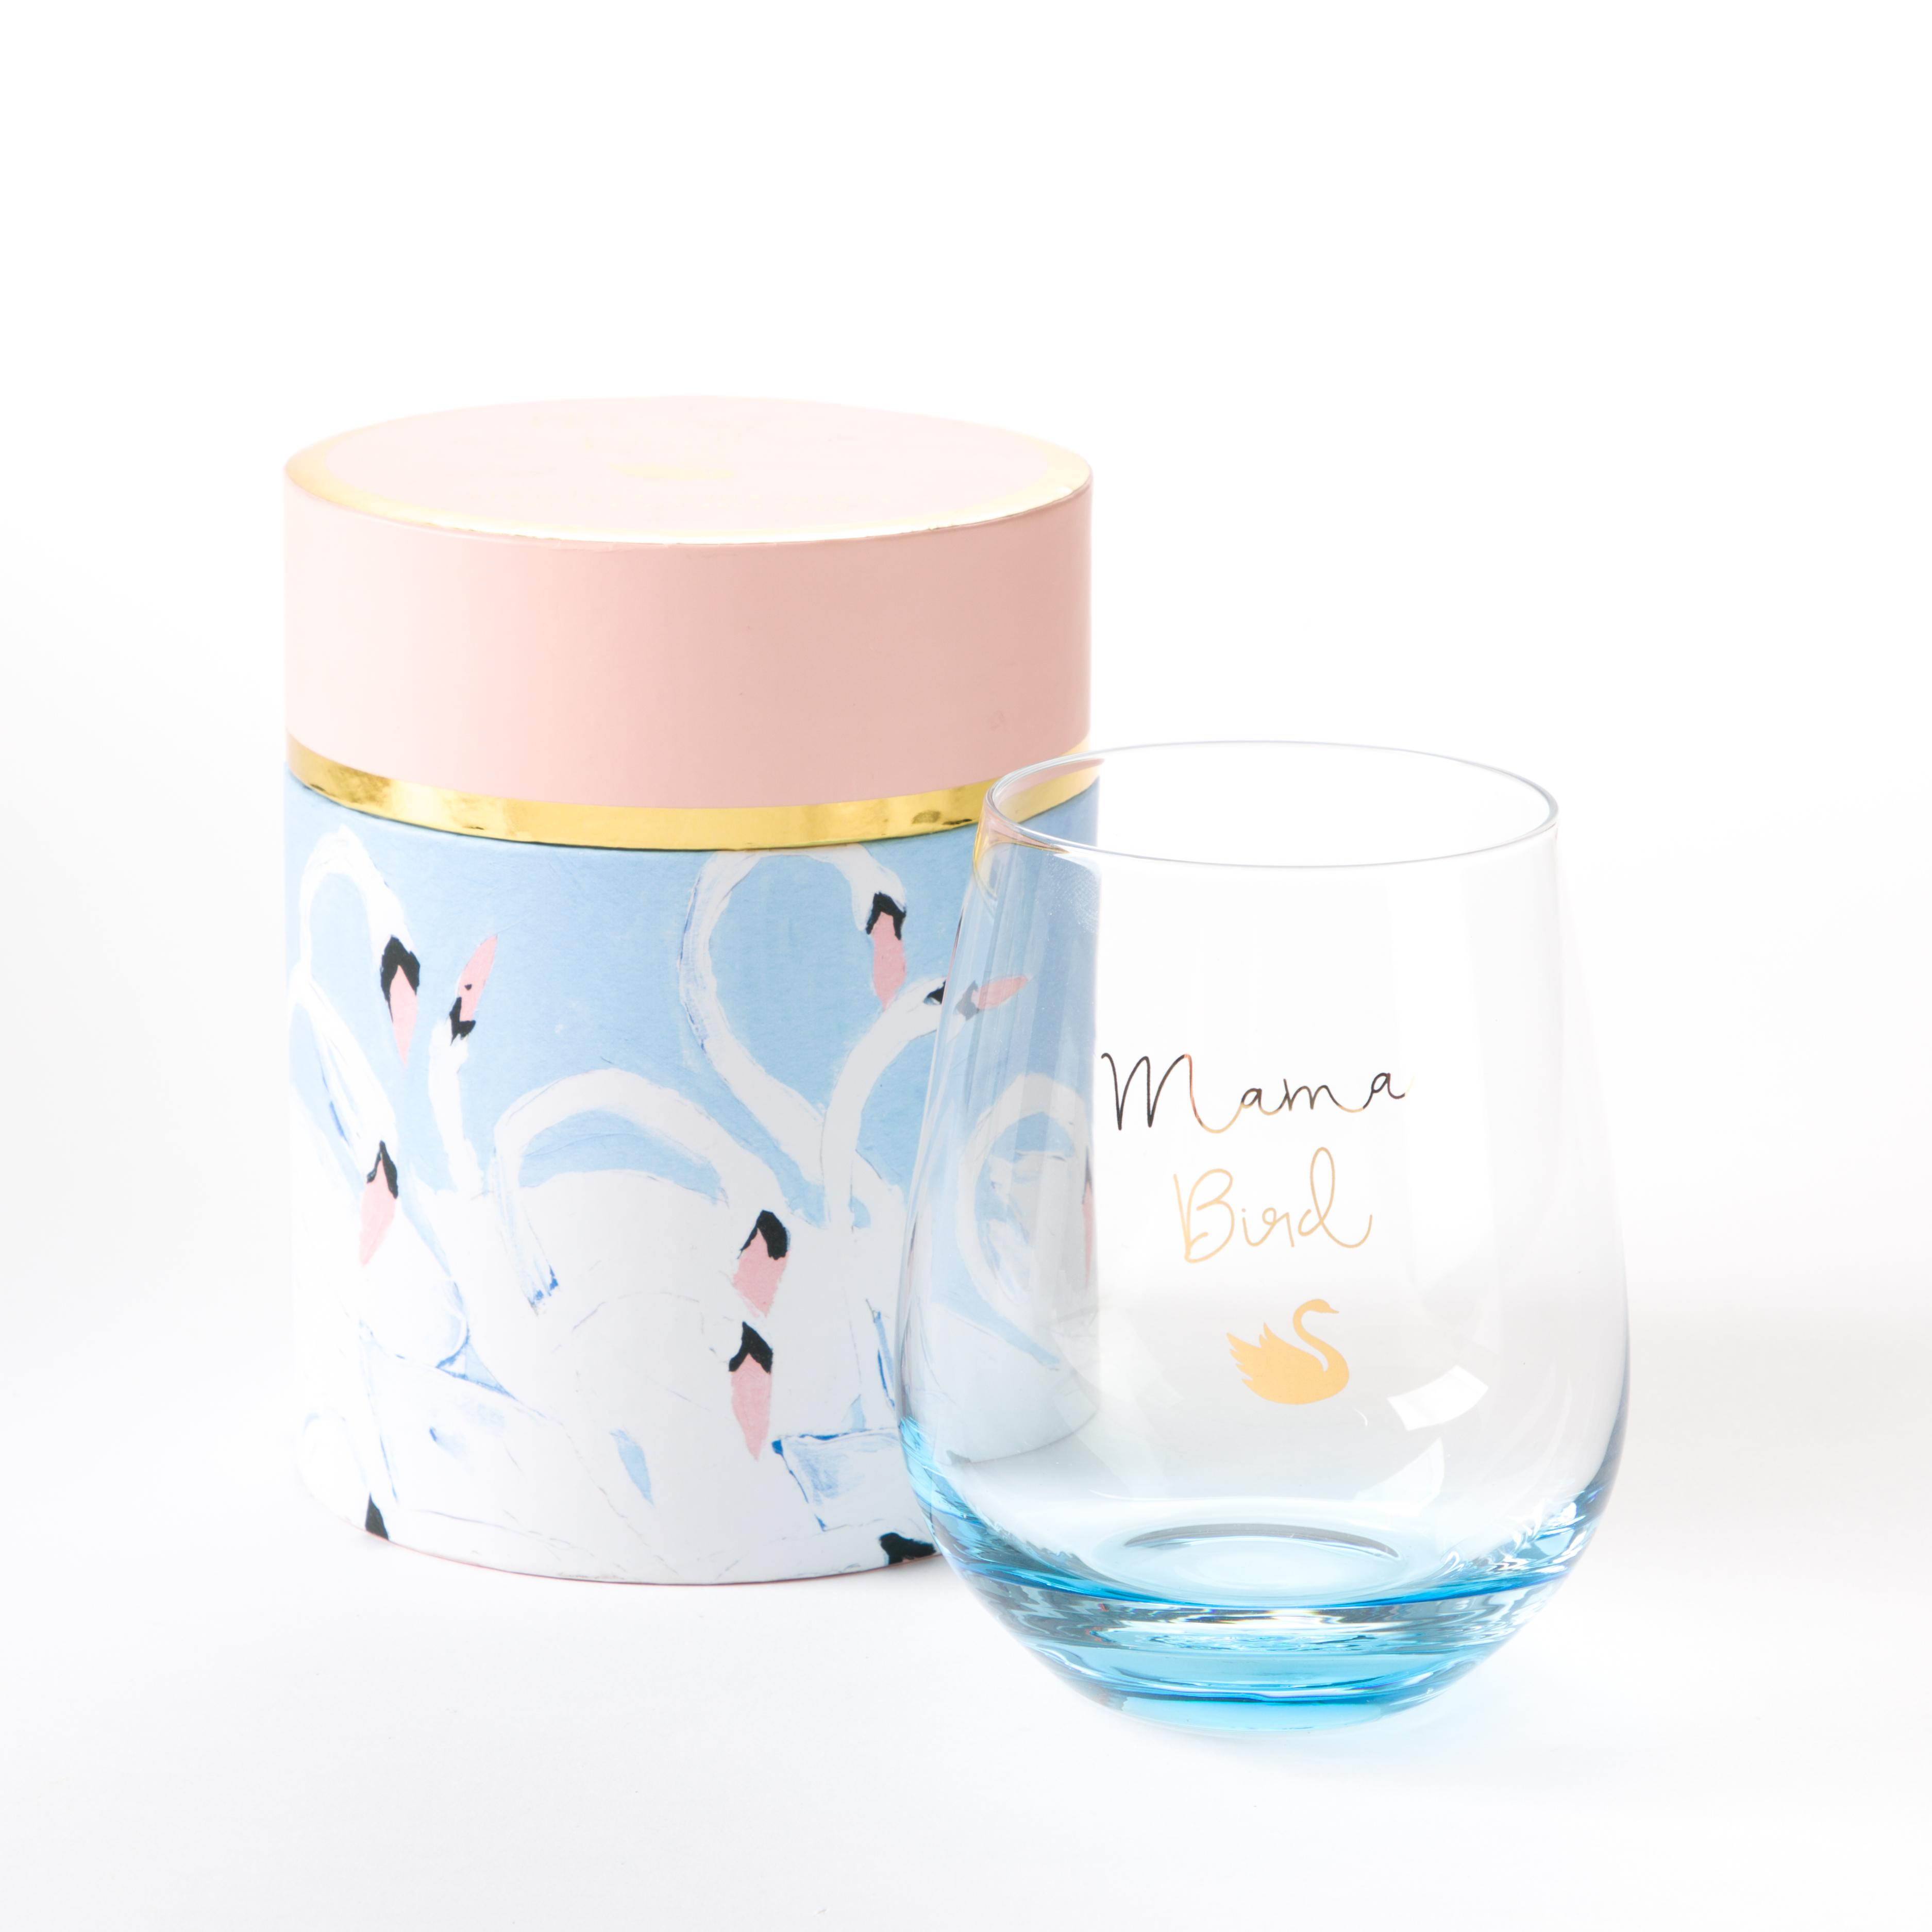 PAPYRUS Mama Bird Stemless Wine Glass // Price: $14.95 // Purchase at PAPYRUS stores // (Photo: PAPYRUS)